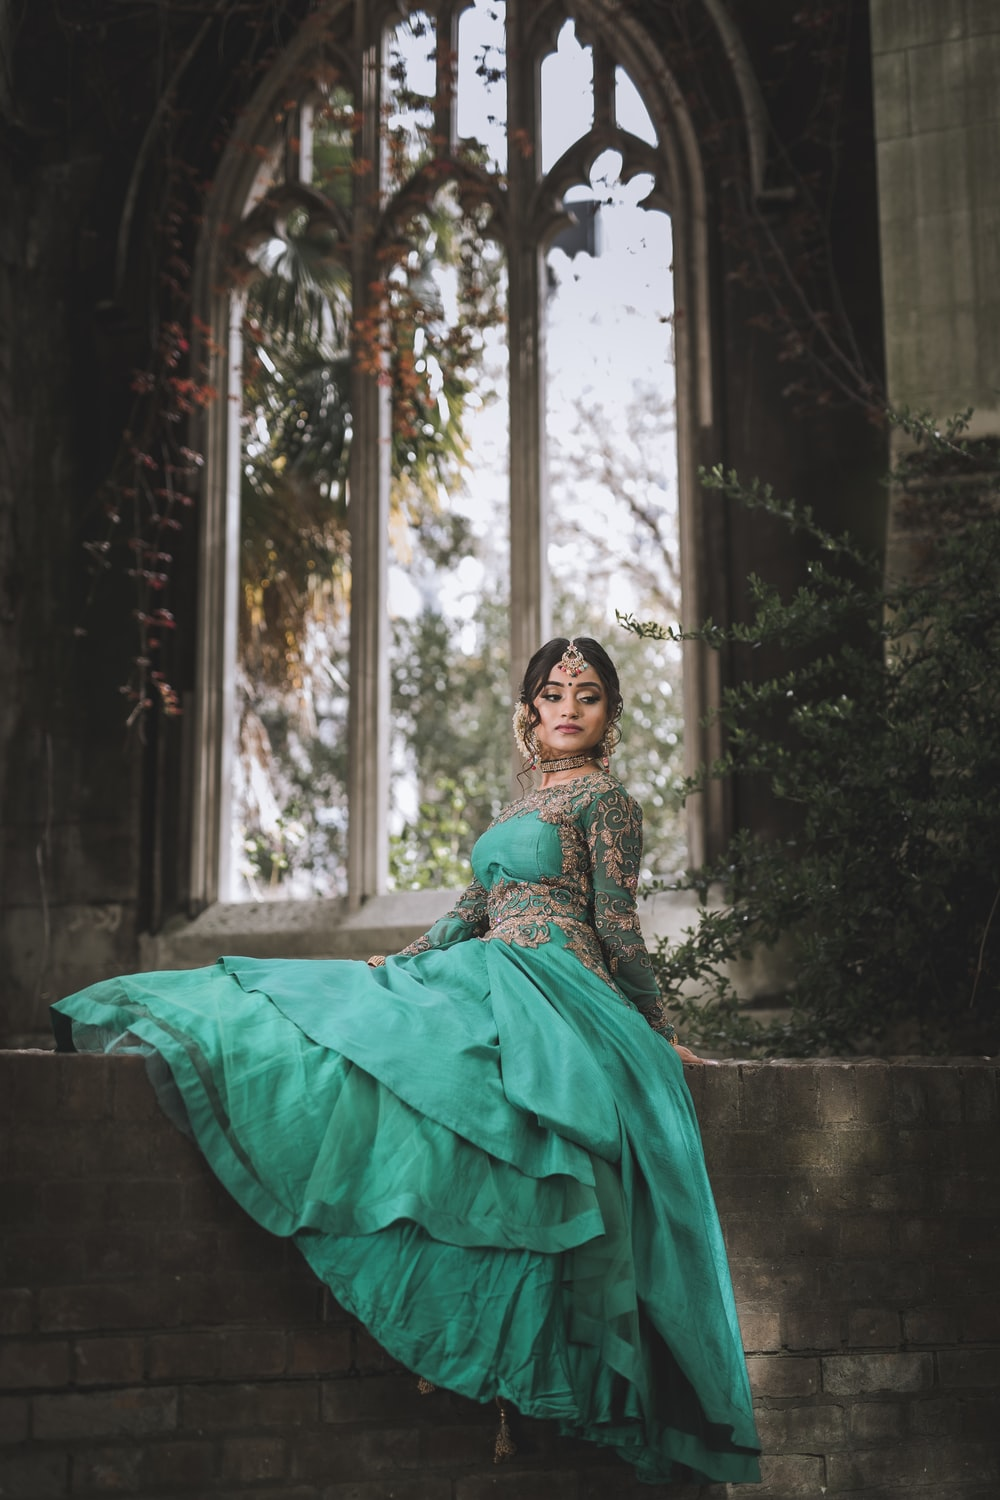 woman in green dress sitting on concrete bench